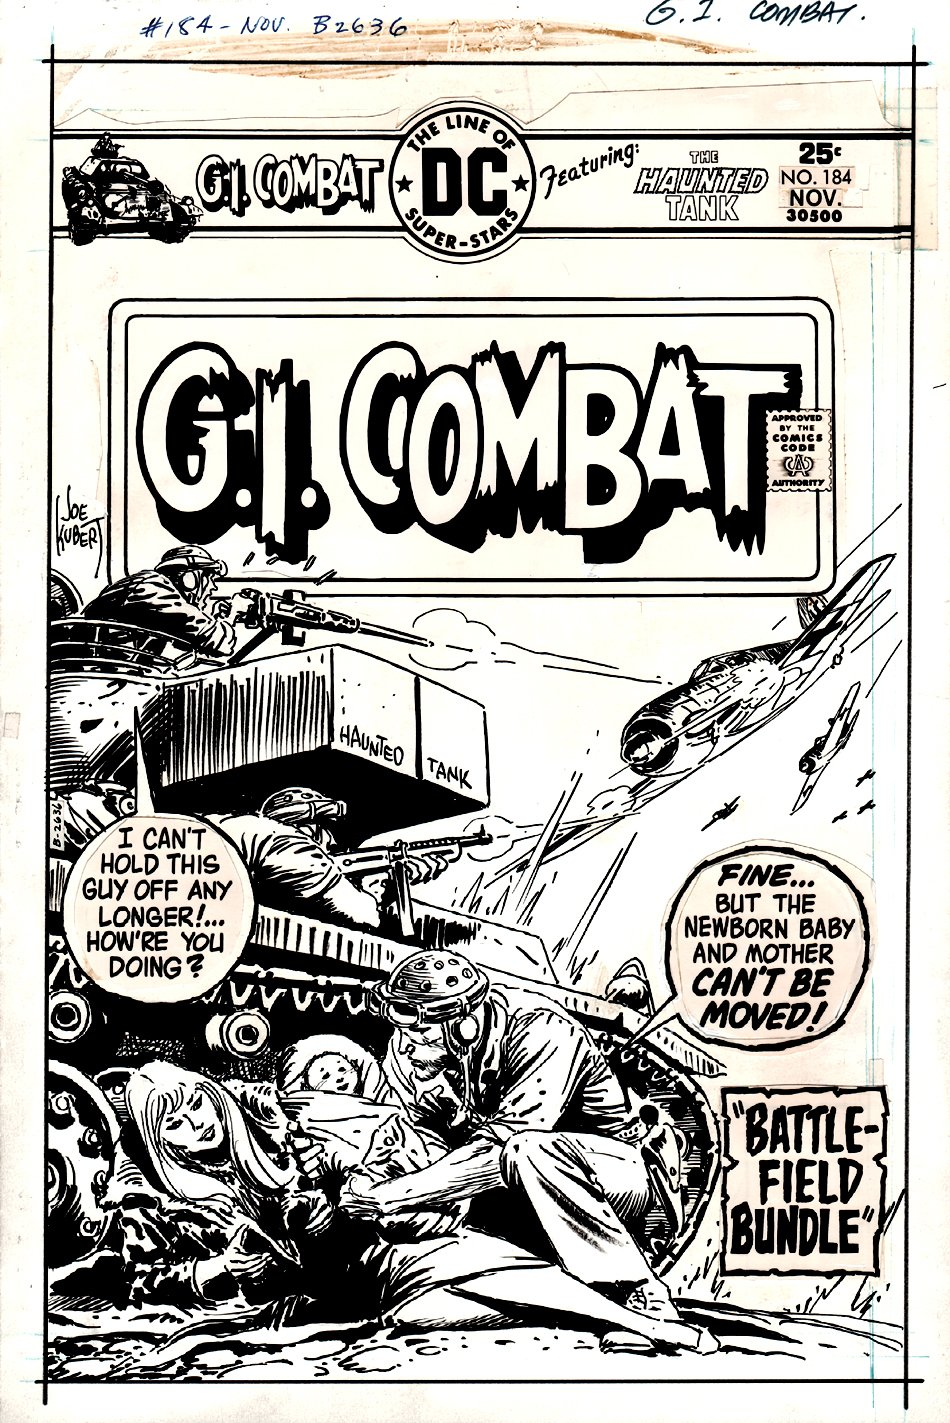 G.I. Combat #184 Cover (THE HAUNTED TANK!) 1975